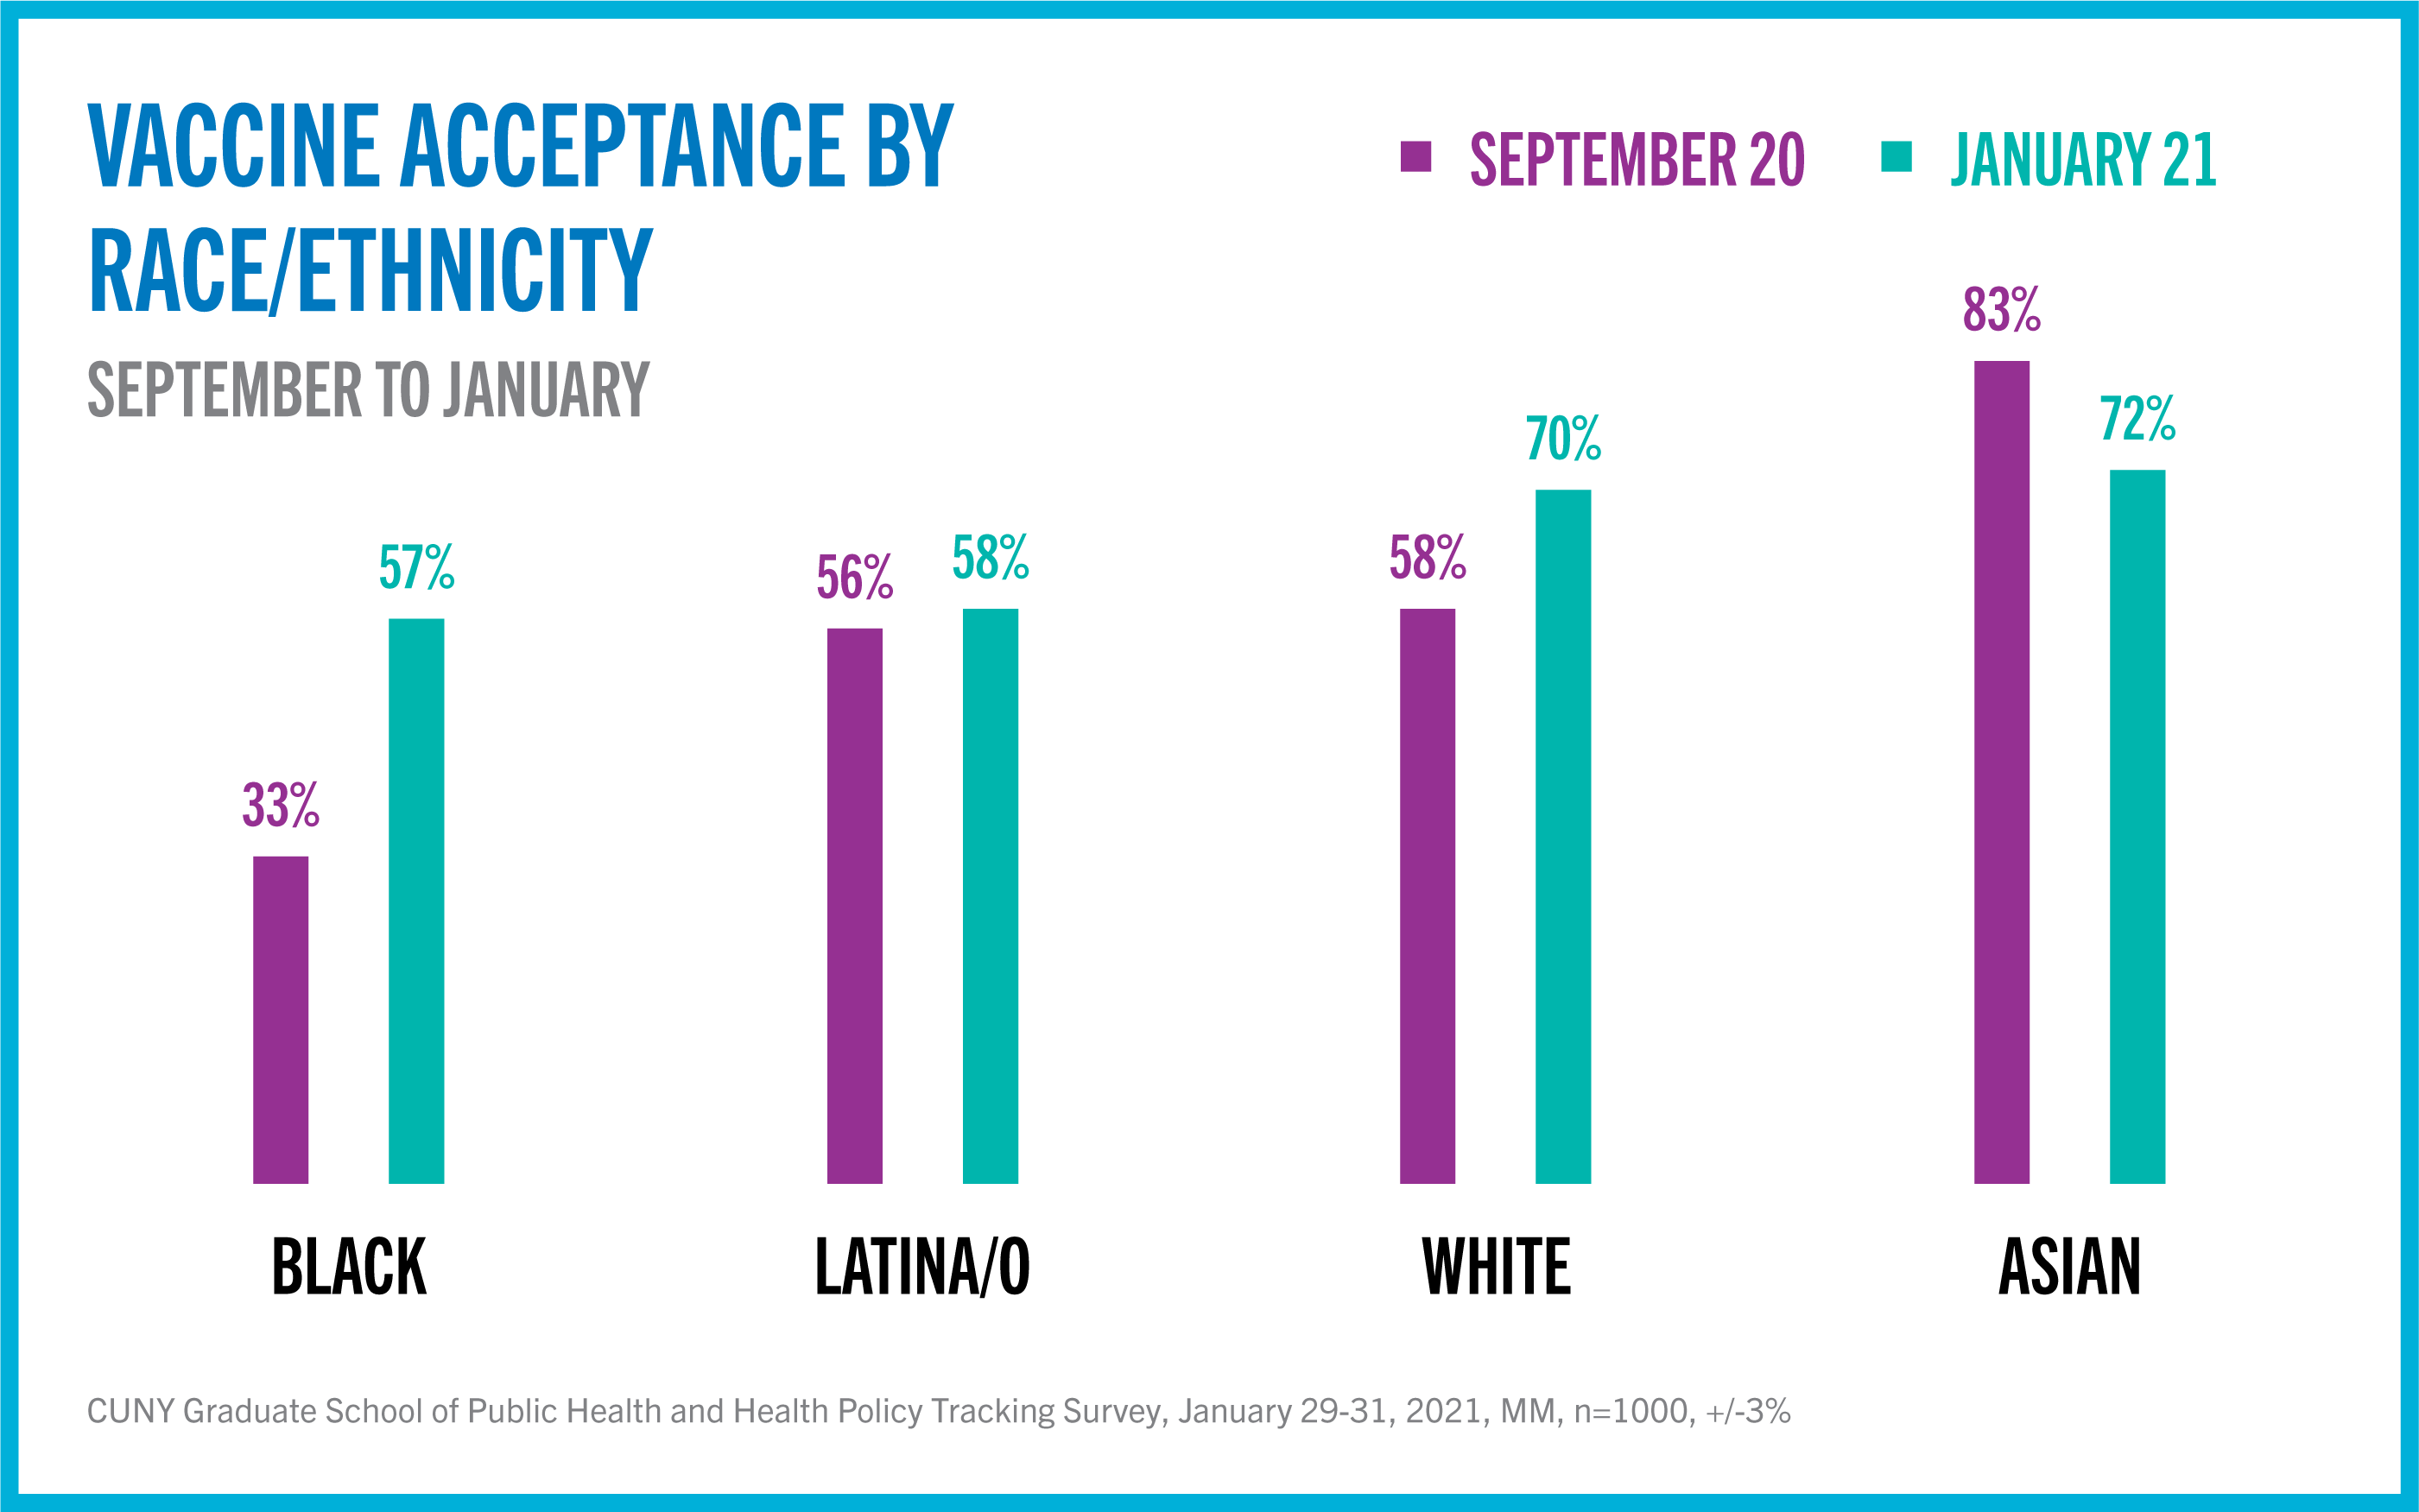 Vaccine acceptance by race/ethnicity graphic